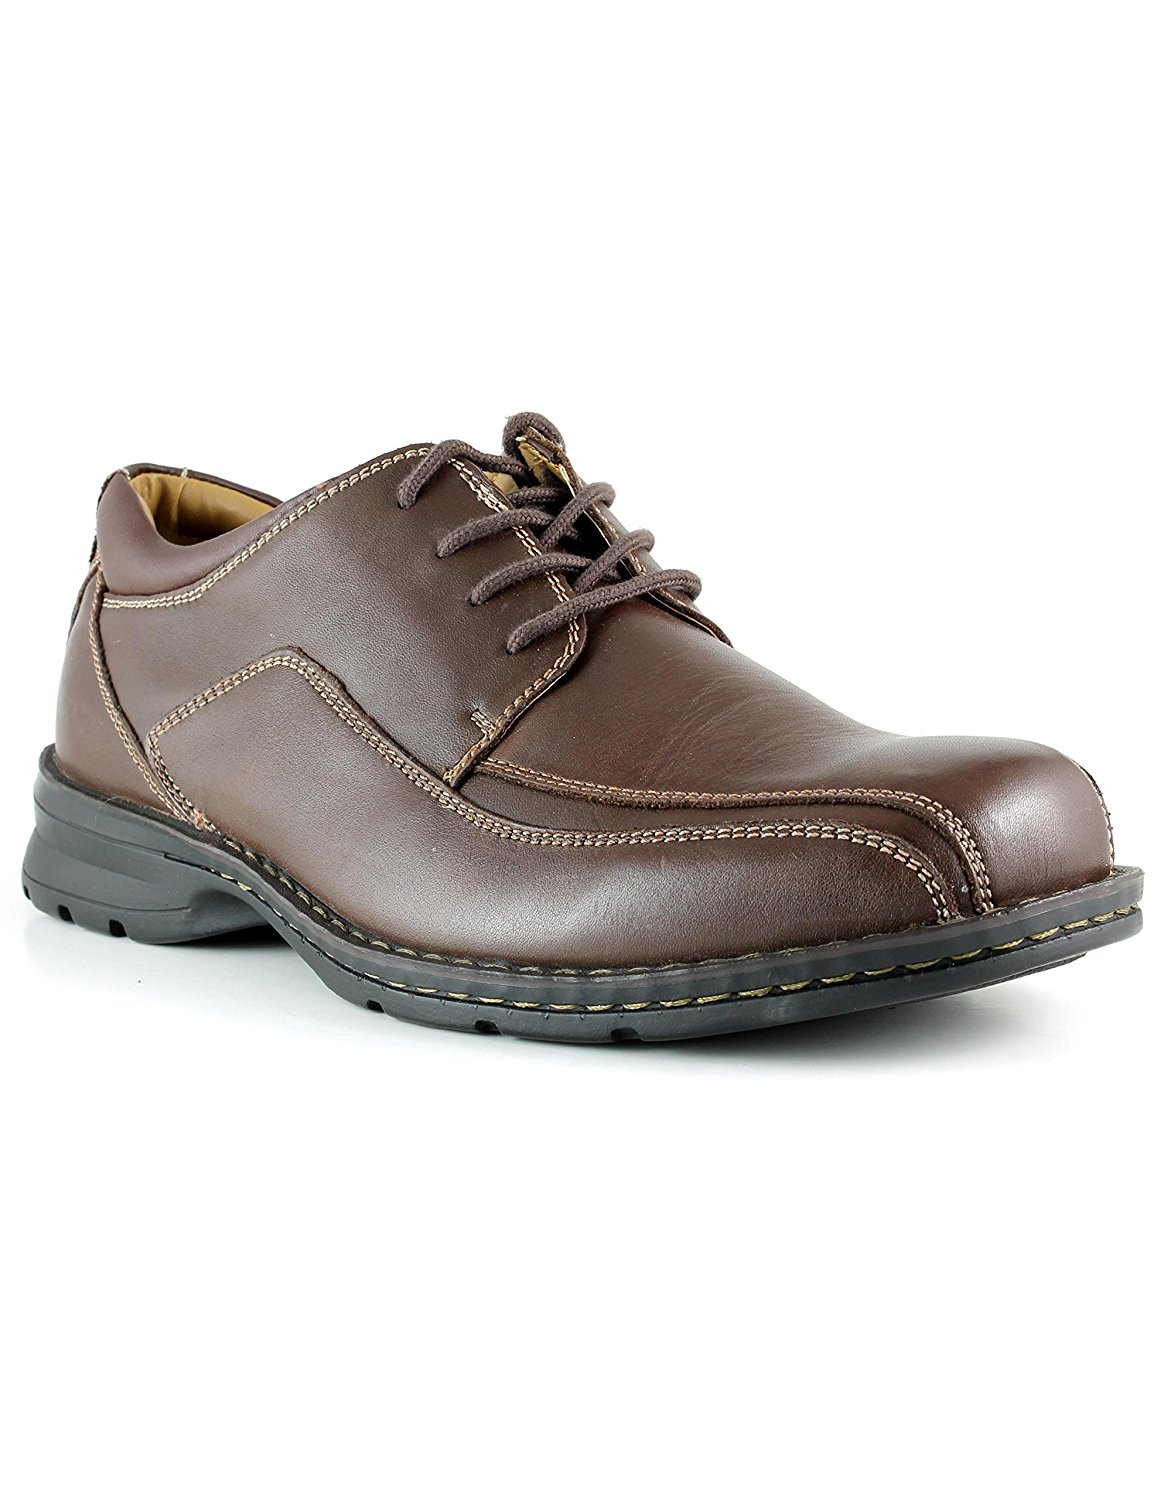 Dockers Mens Trustee Leather Lace-Up Oxford Casual Dress Shoe by Dockers